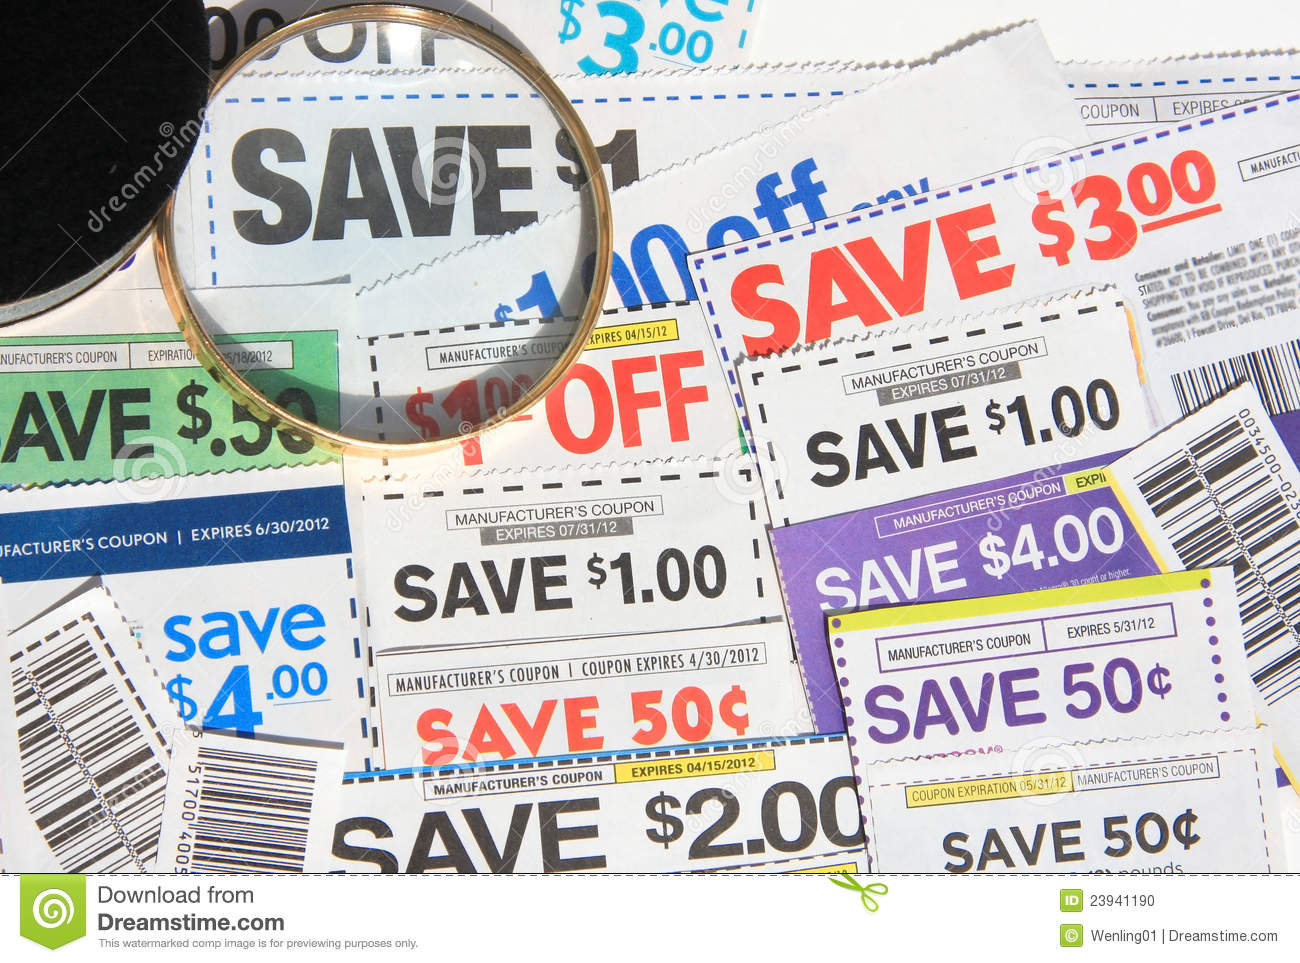 Entertainment Book: Save up to 50% with 1,s of coupons and discounts near you and nationwide - restaurants, attractions, shopping, travel and more!